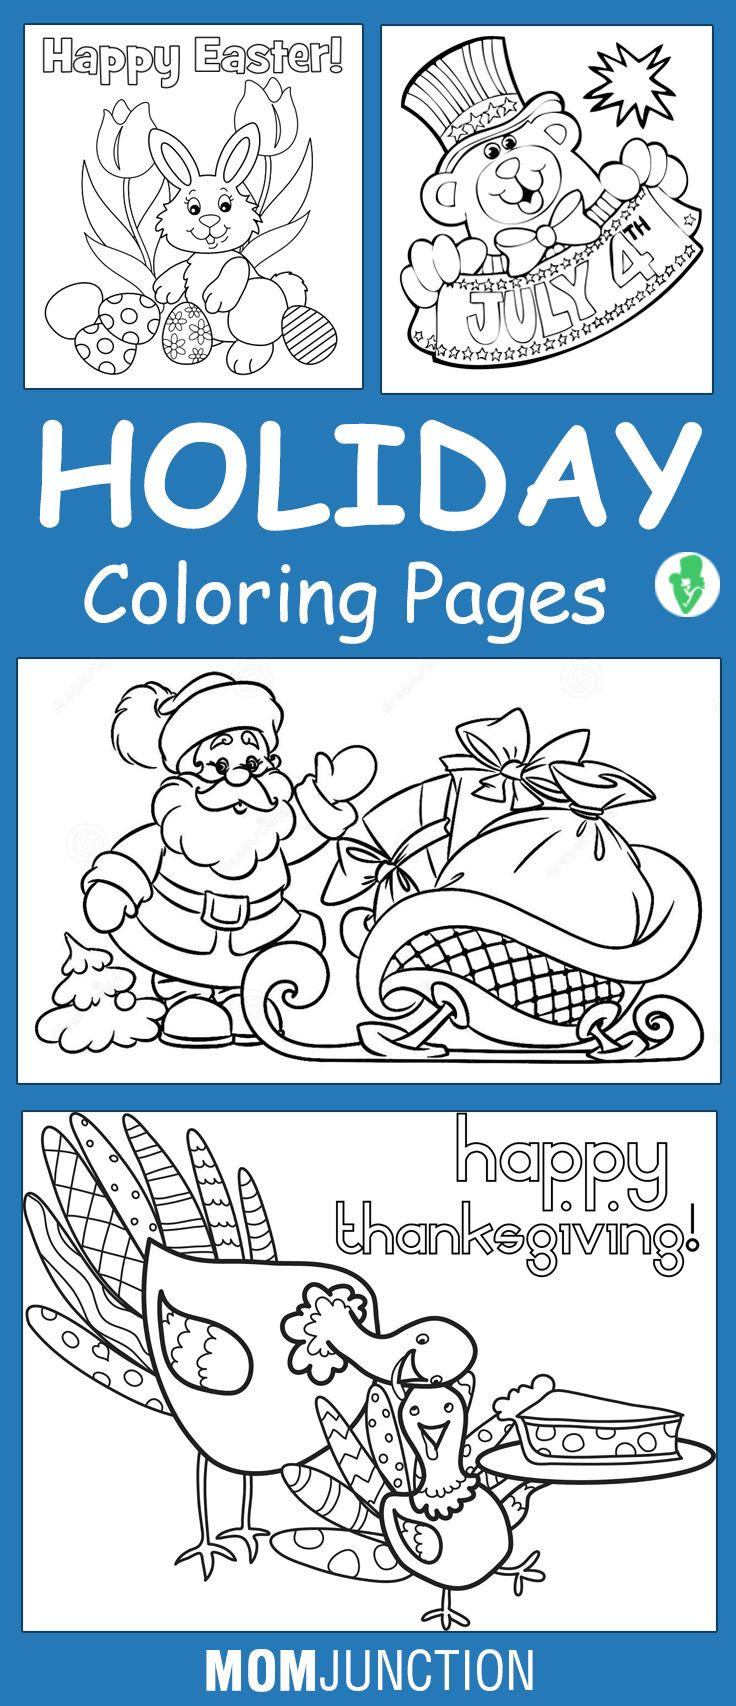 Top 20 Free Printable Bird Coloring Pages Online | Bird, Kids ...